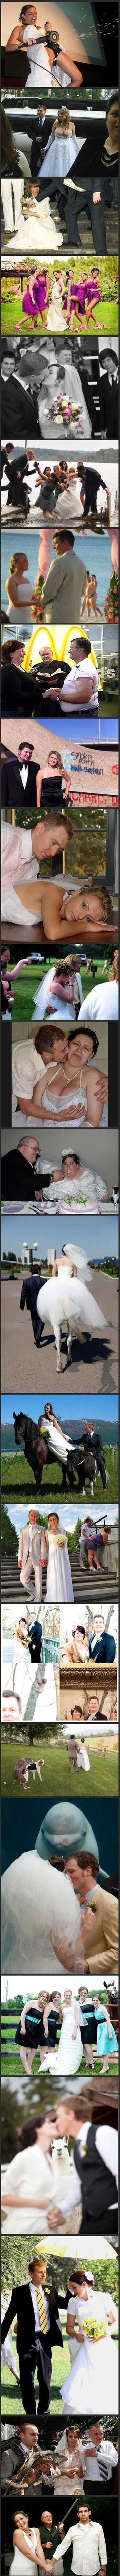 Hilarious WTF wedding photos.